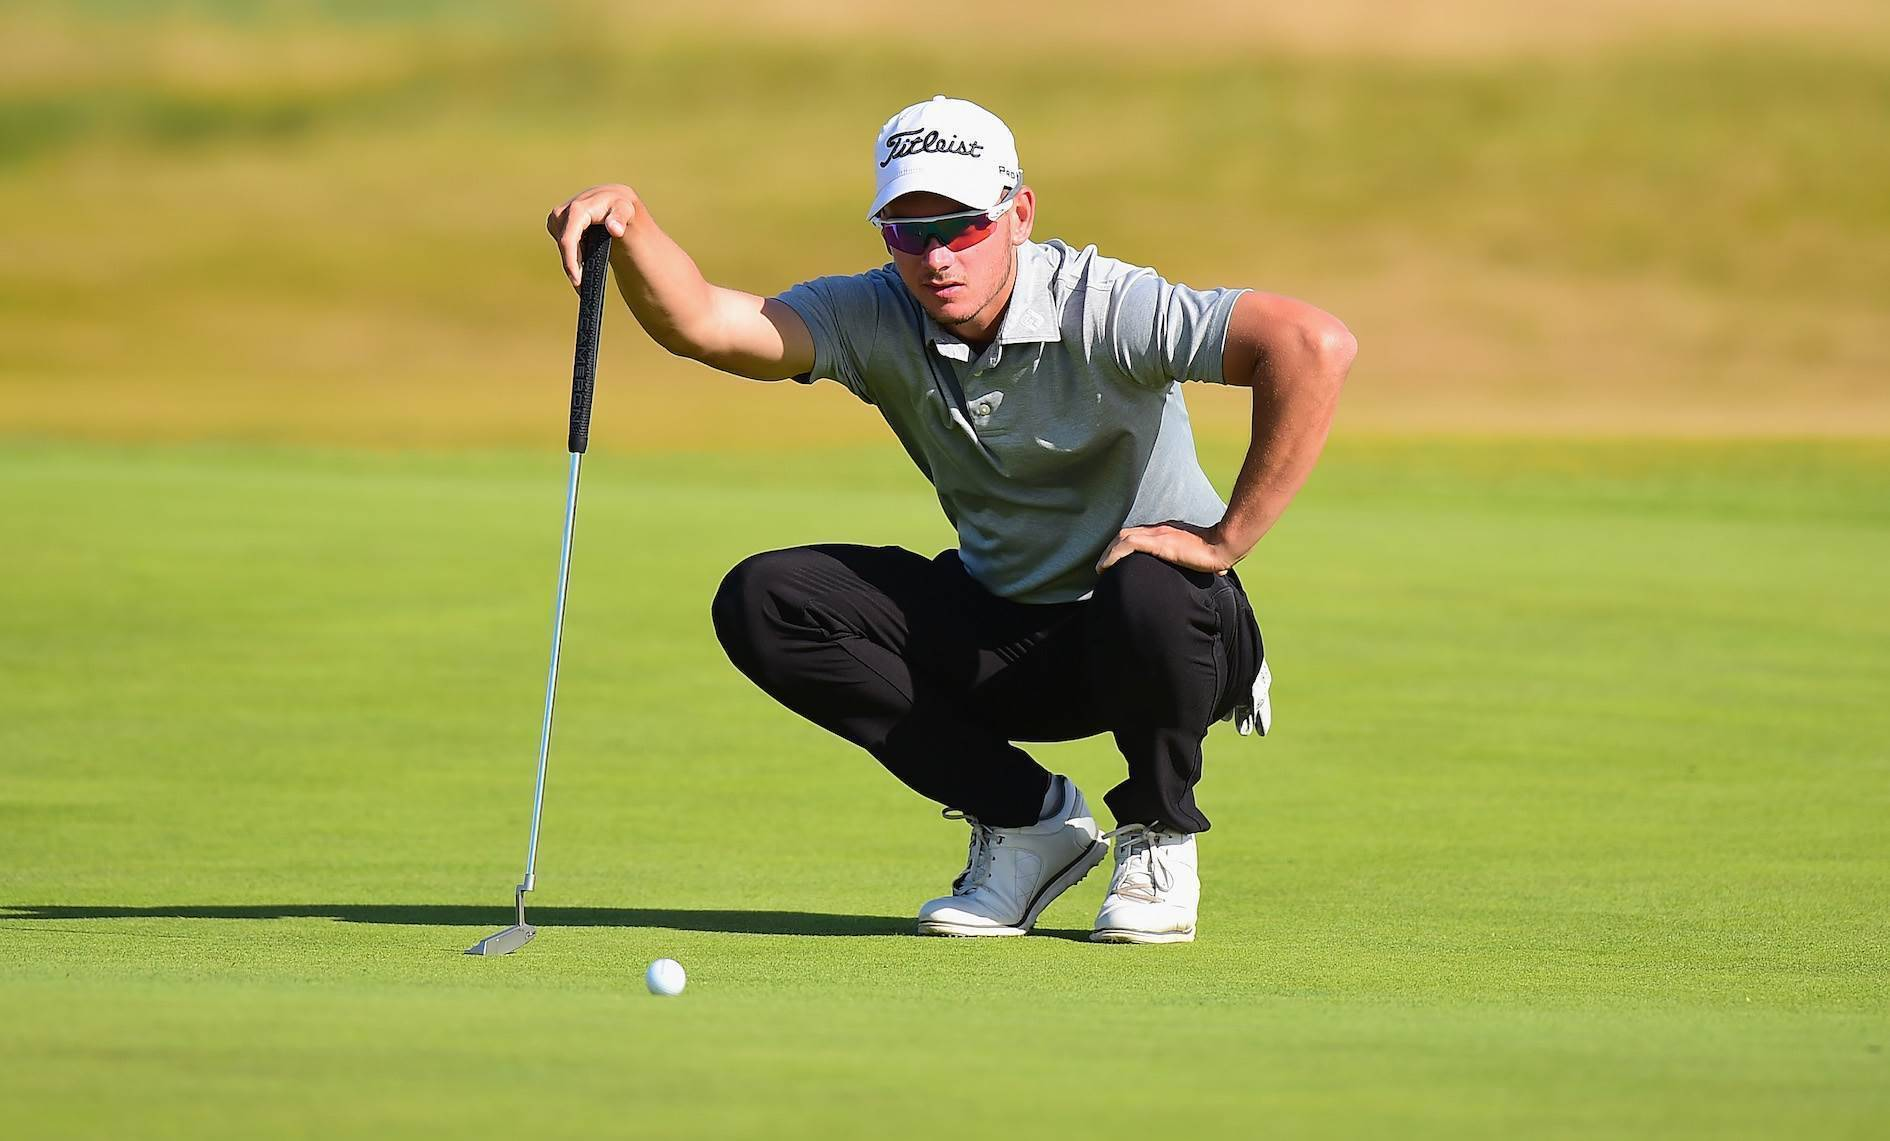 aussie dylan perry reaches the amateur championship final - golf